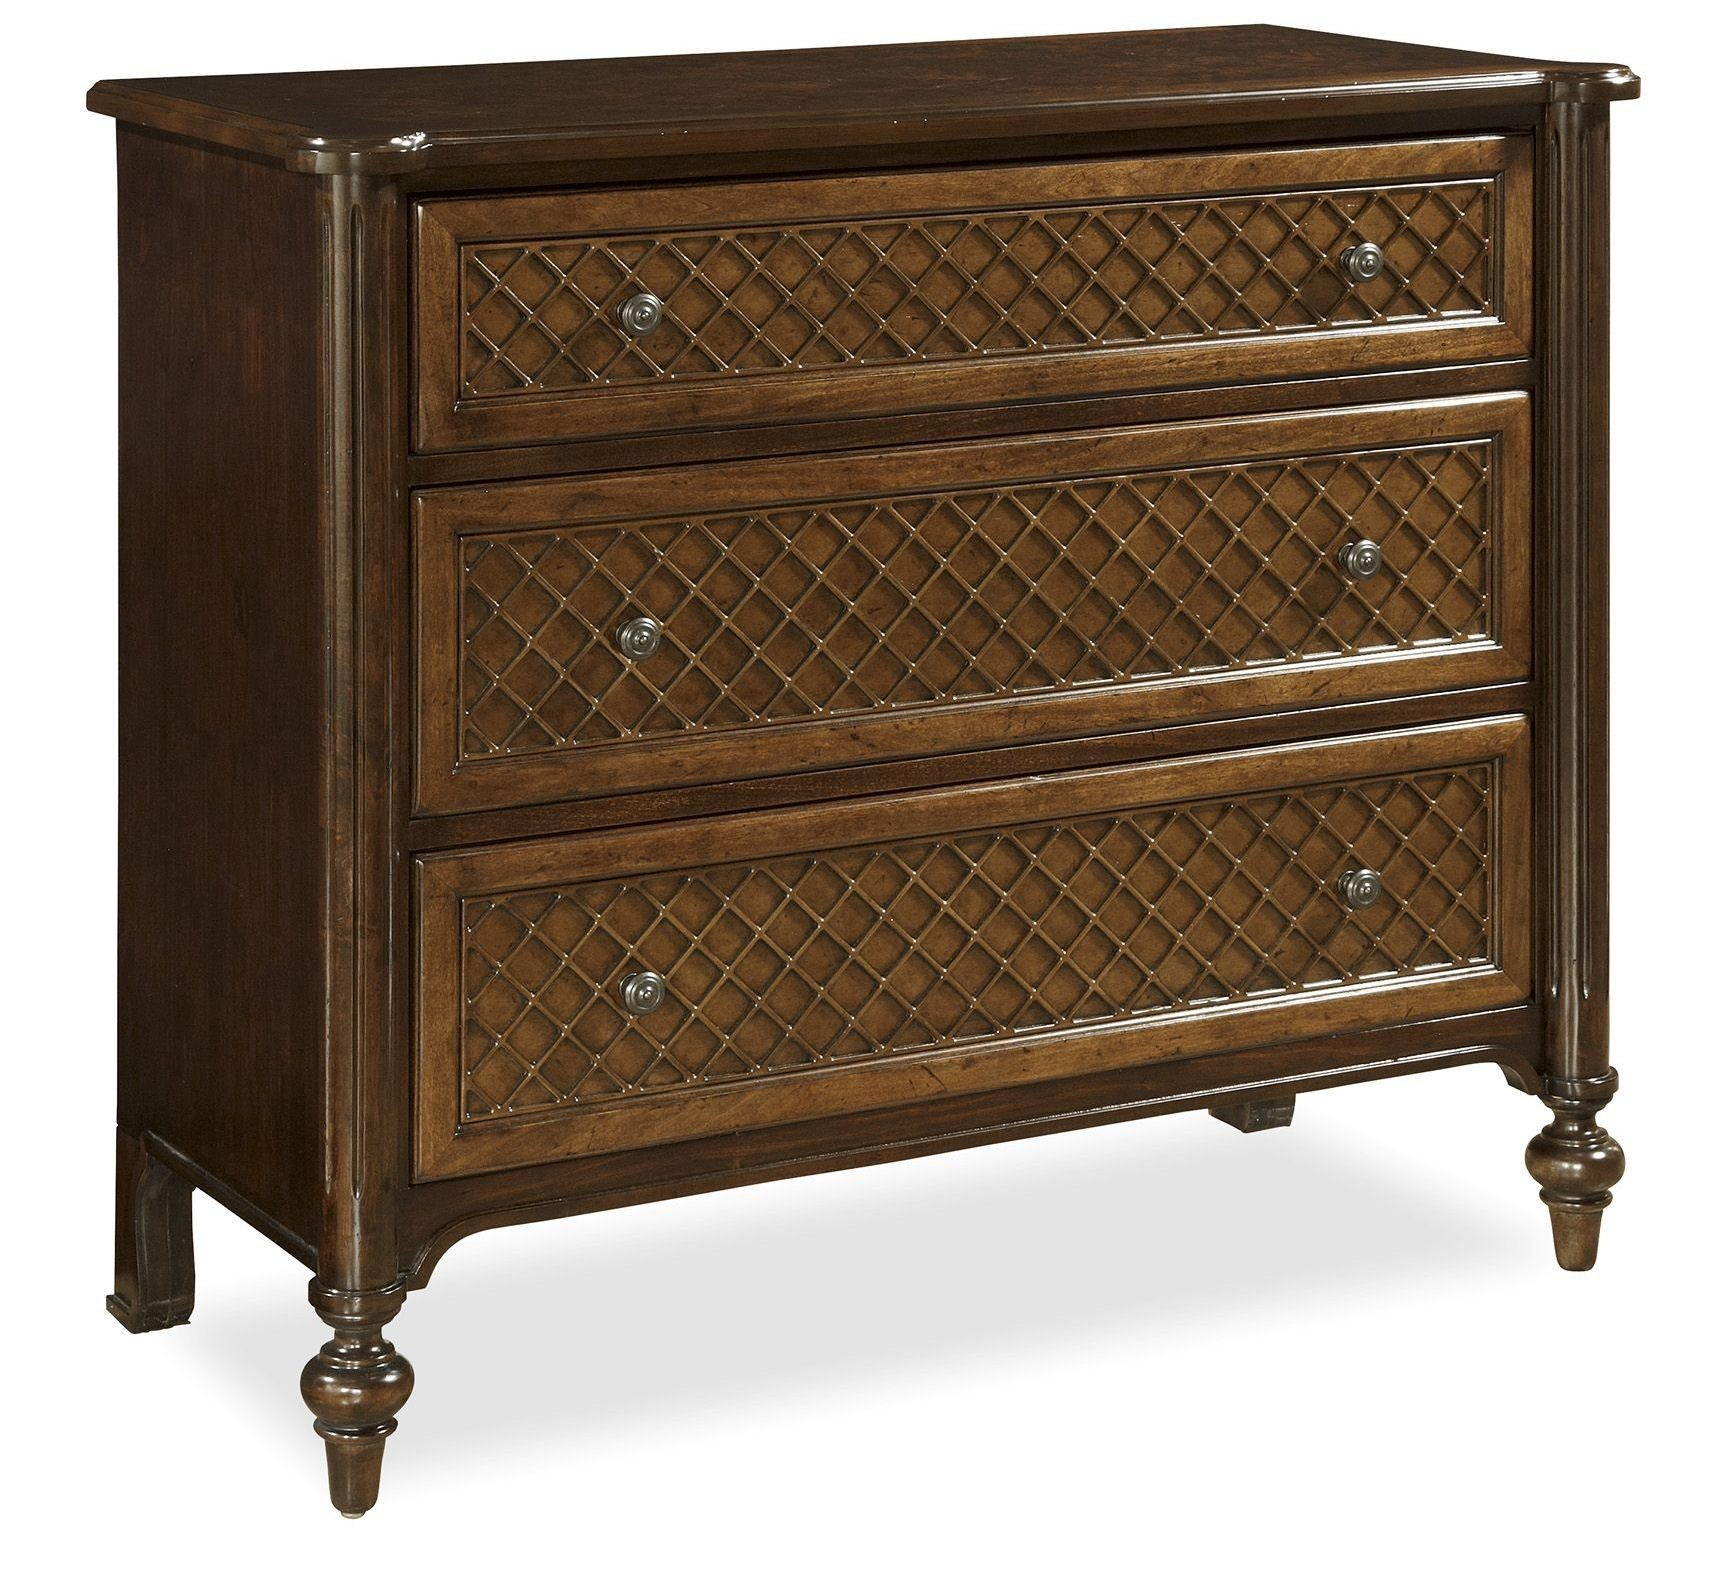 #654425 Proximity 3 Drawer Hall Chest From Universal (356830) Coleman  with 1720x1571 px of Best Hall Chests With Drawers 15711720 image @ avoidforclosure.info